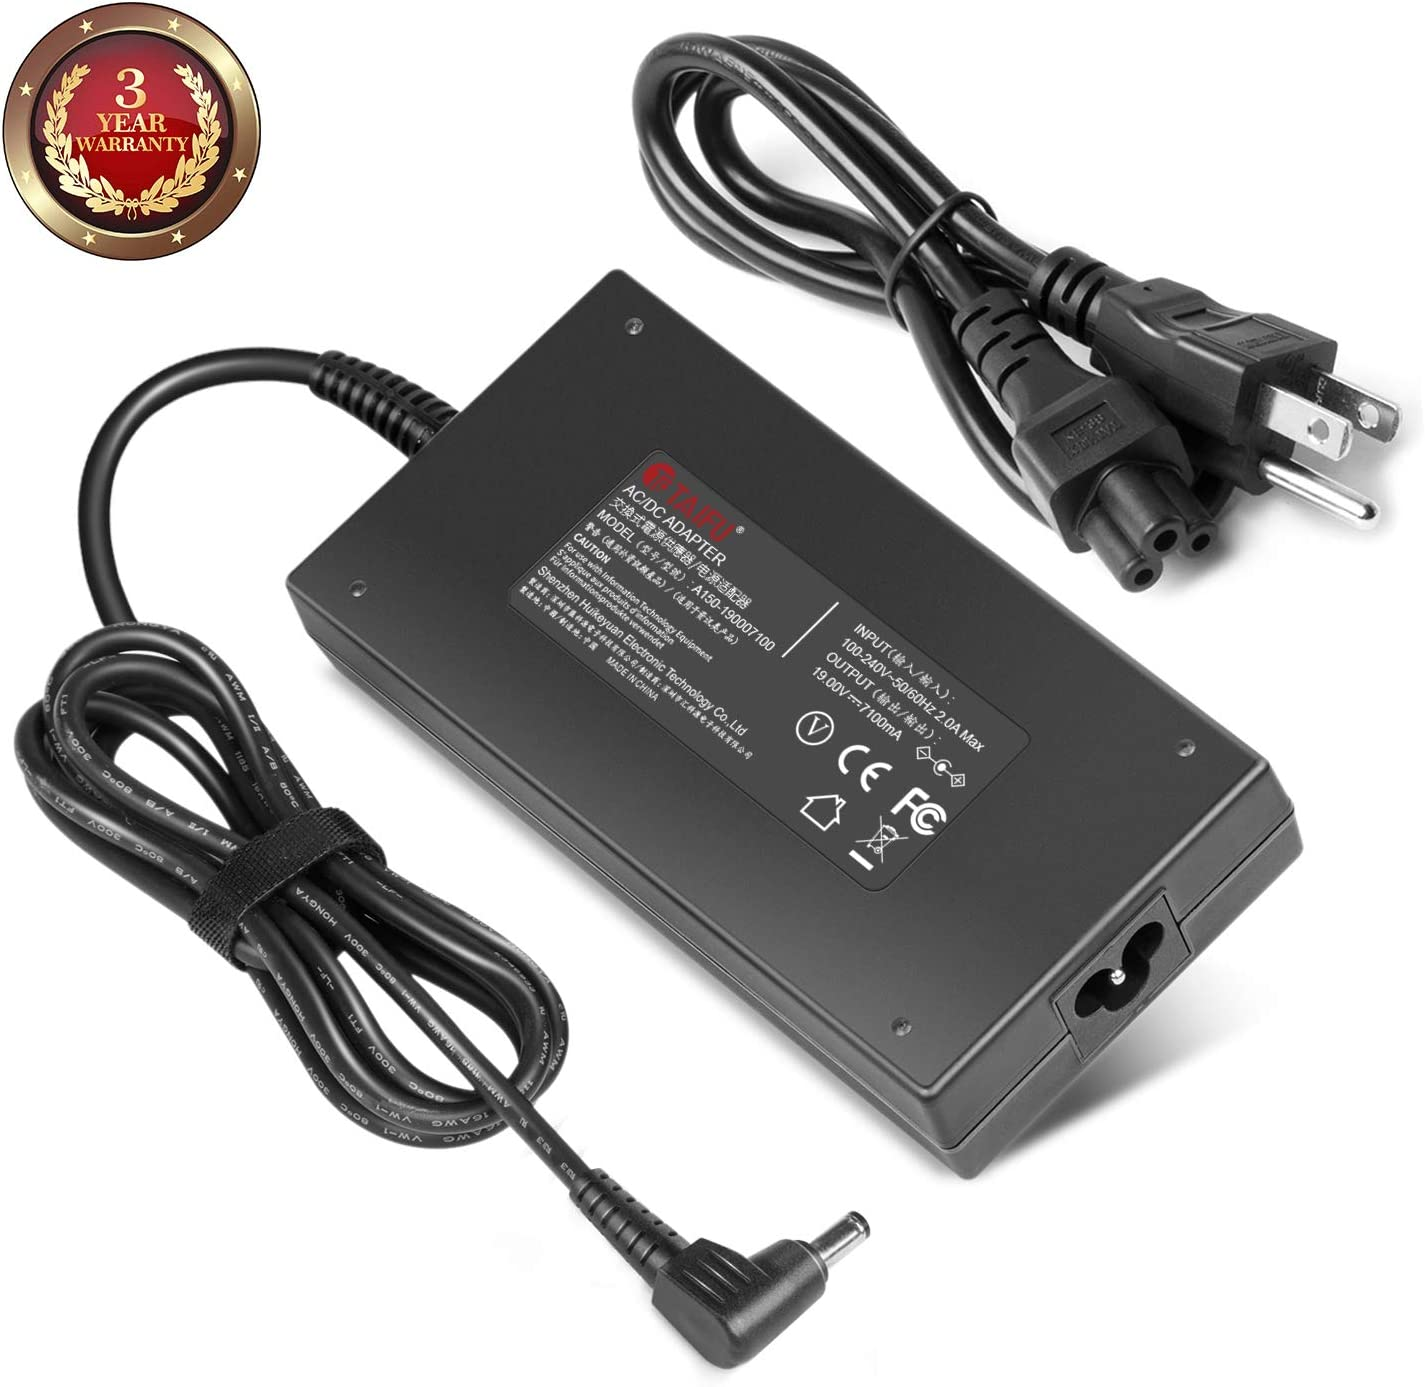 TAIFU AC Adapter Charger for 19V 135W Acer Aspire V Nitro VN7-591G VN7-791G VN7-591G-74SK,VN7-591G-70JY,VN7-591G-792U Notebook Power Supply